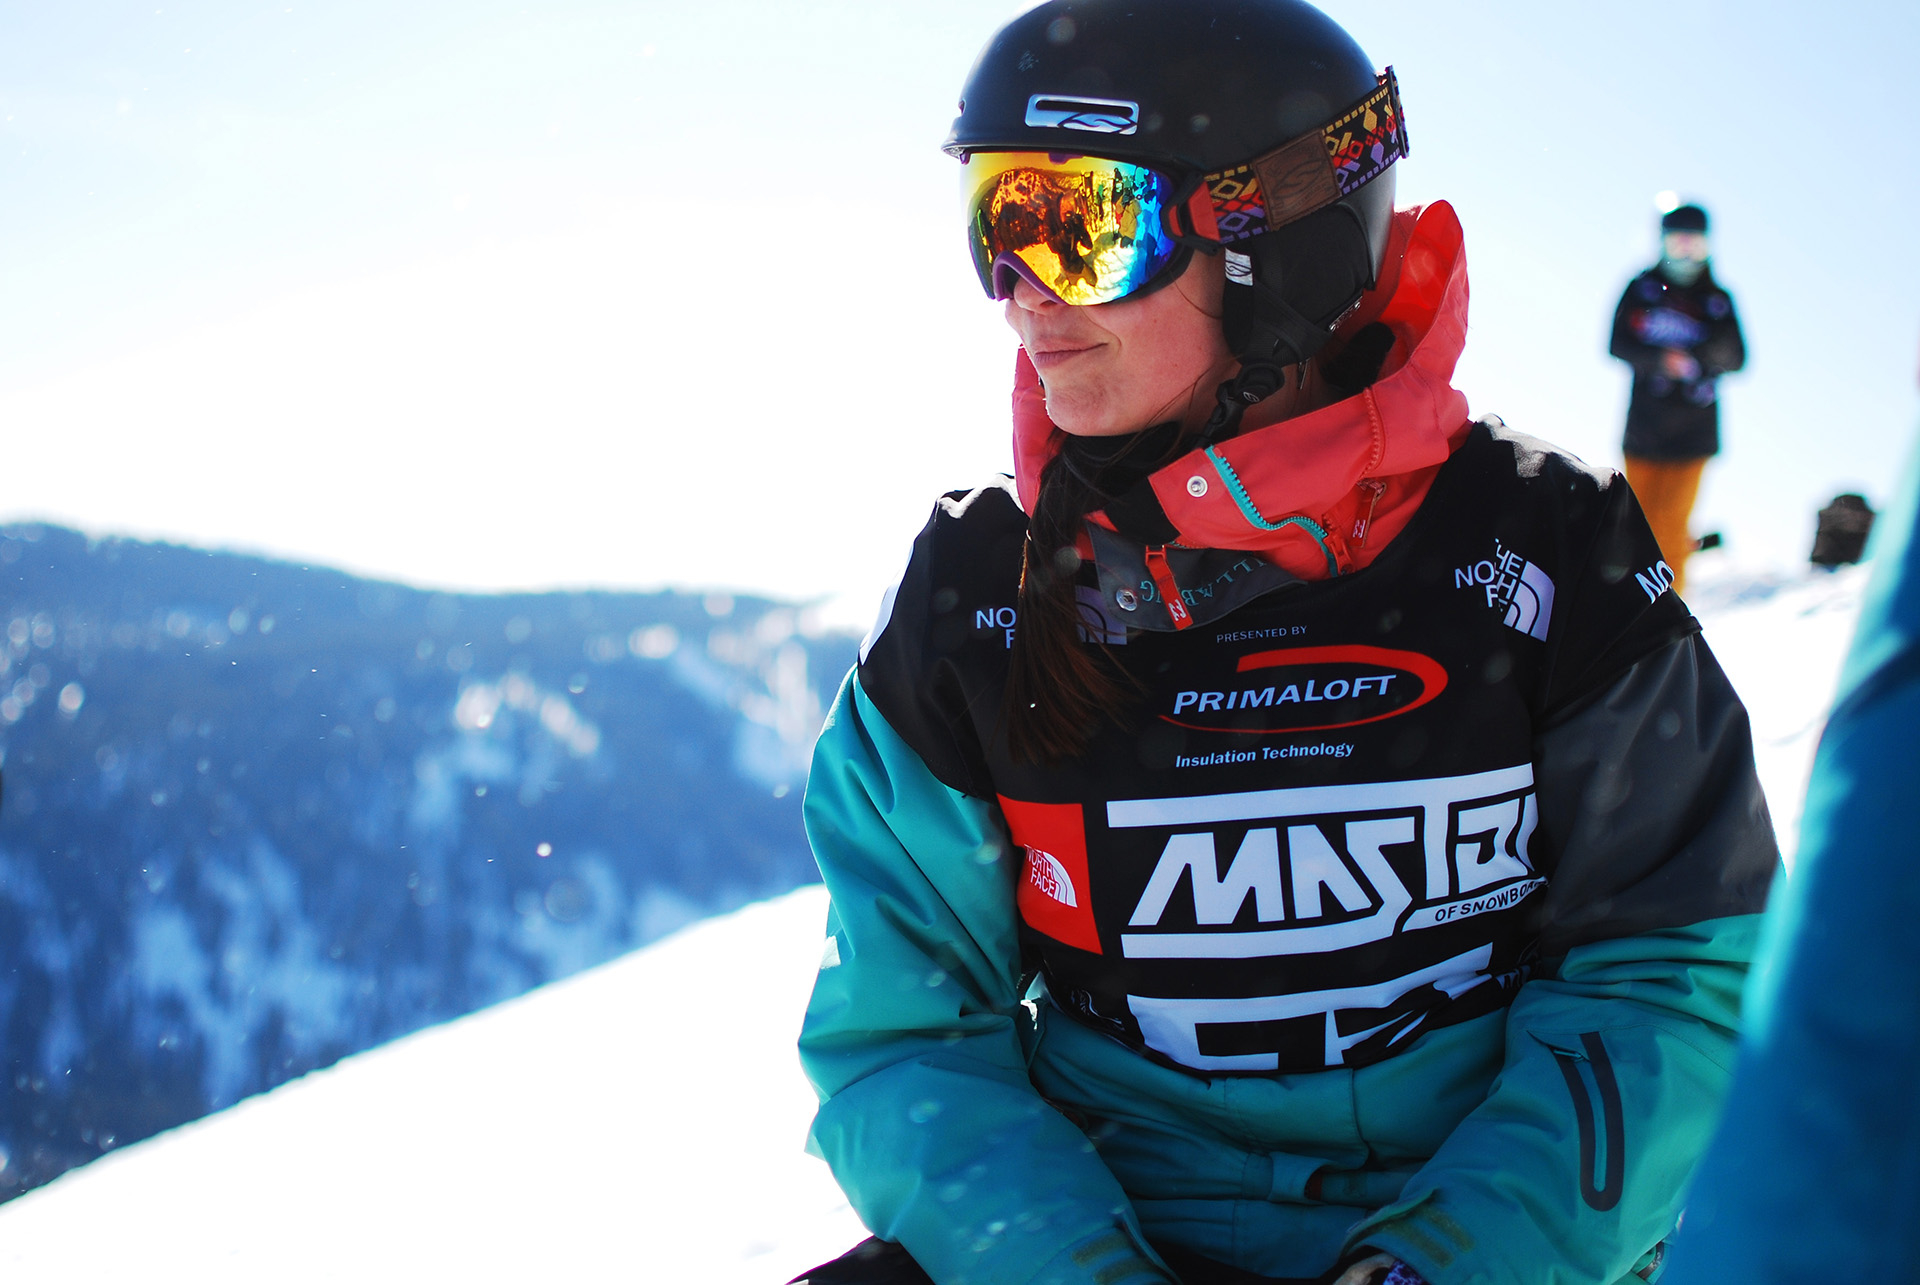 Female snowboarder at Squaw Valley at Lake Tahoe